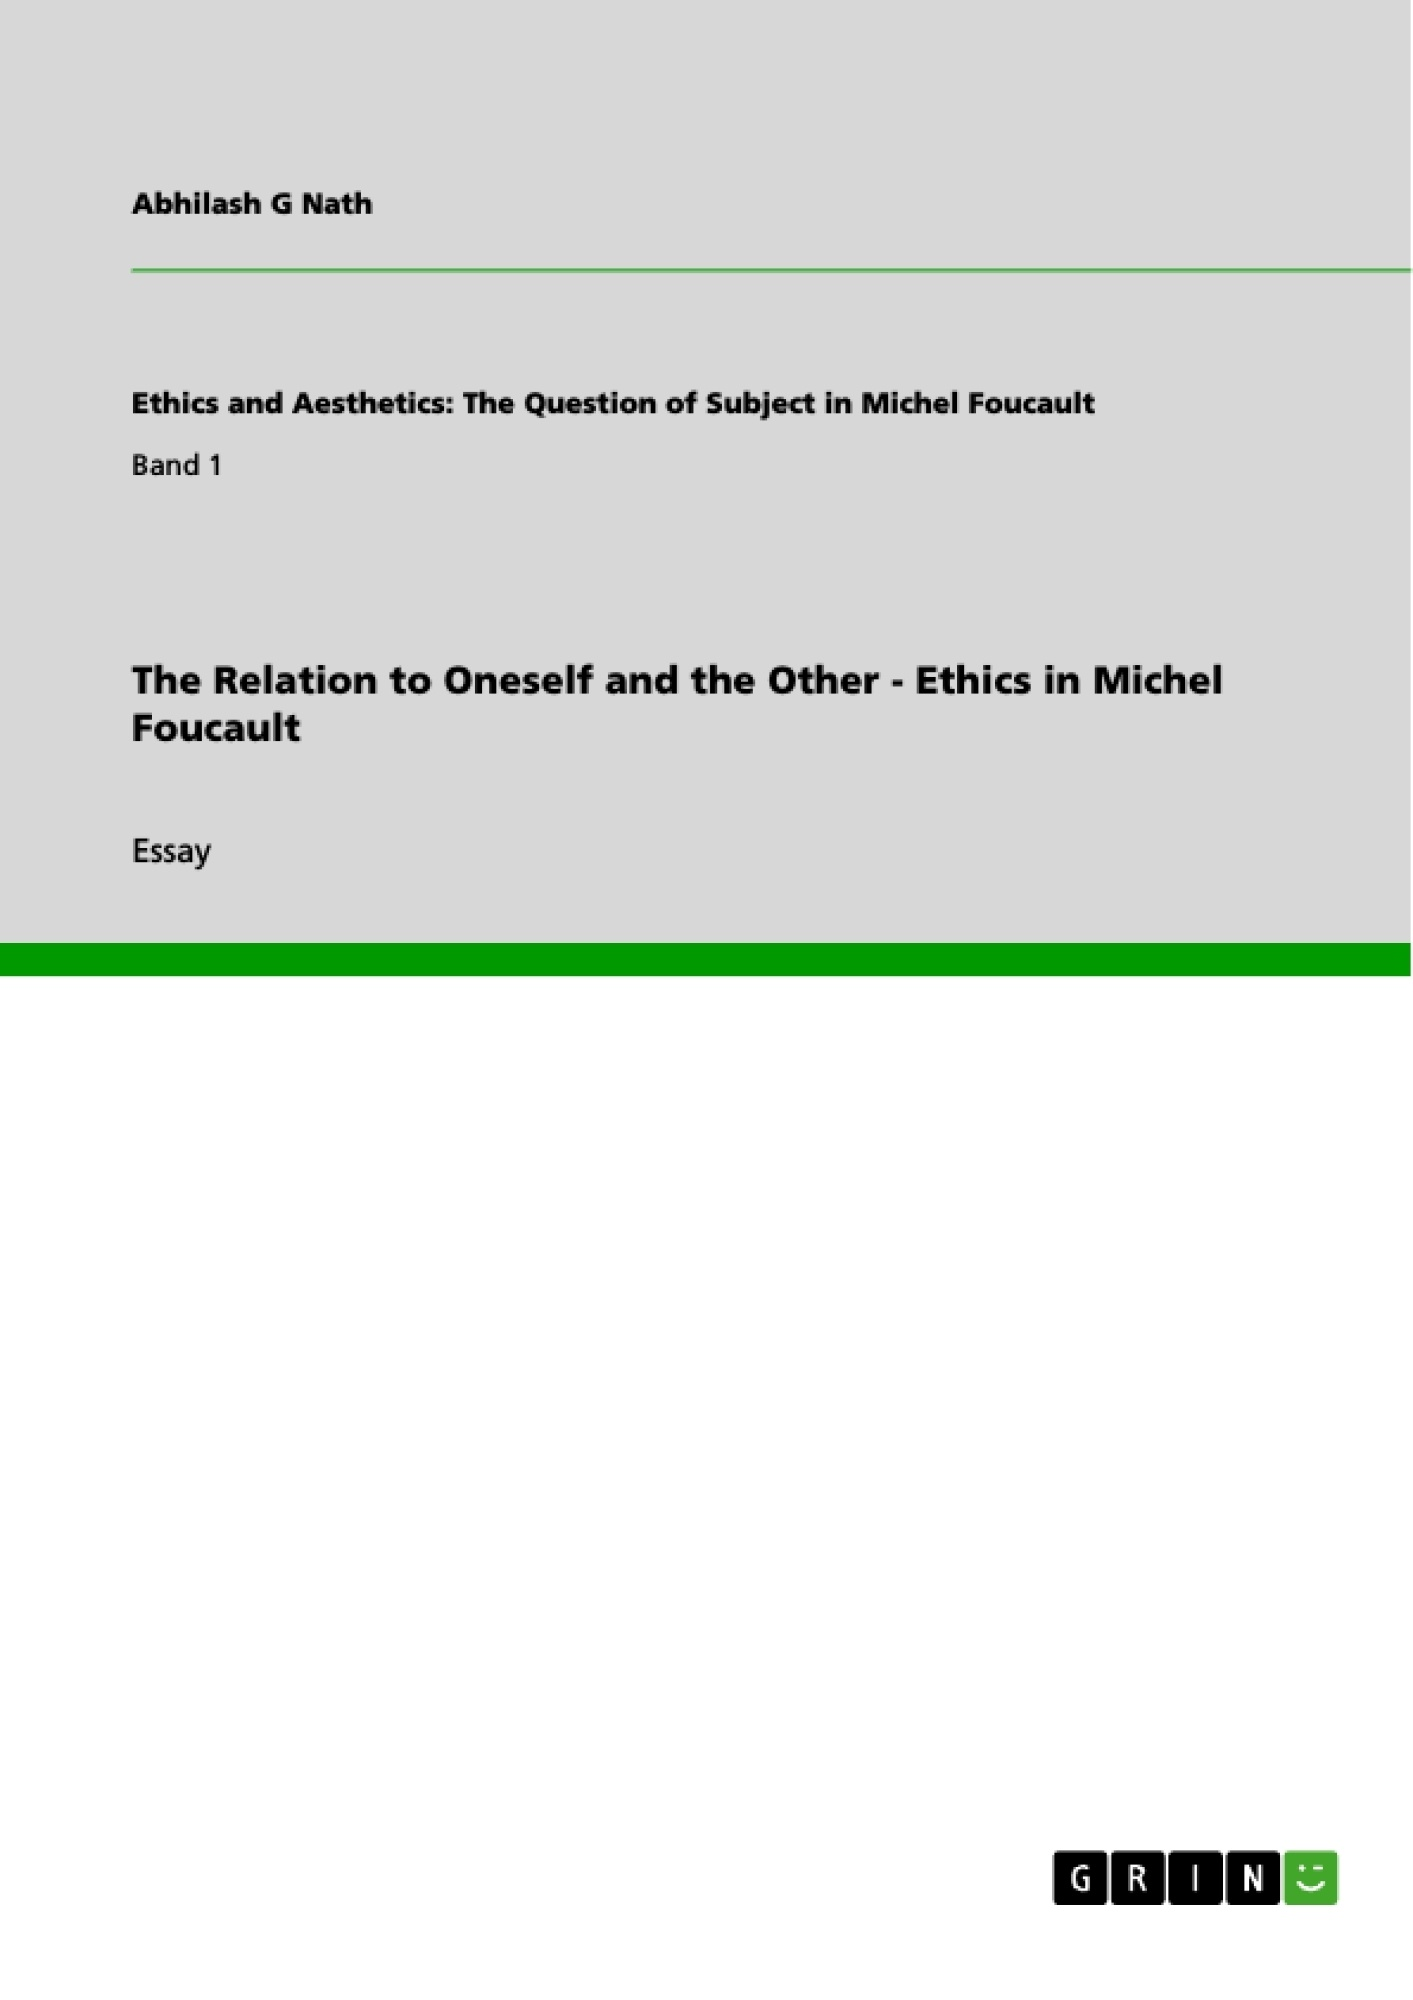 Title: The Relation to Oneself and the Other - Ethics in Michel Foucault